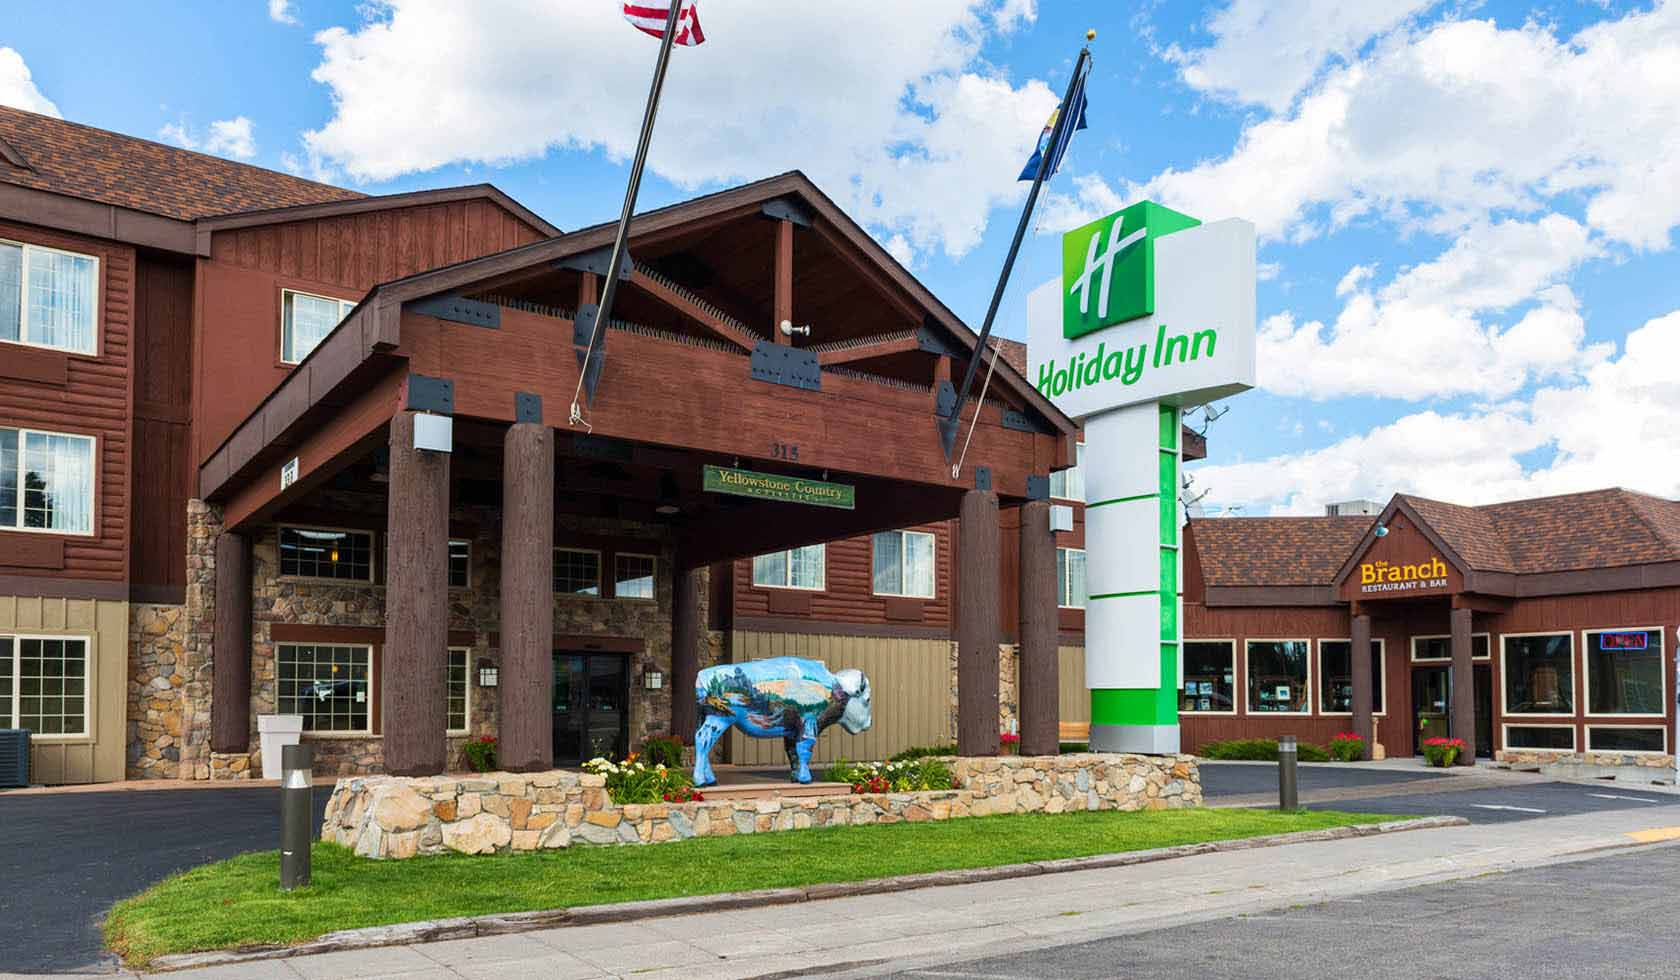 Holiday Inn West Yellowstone profile image